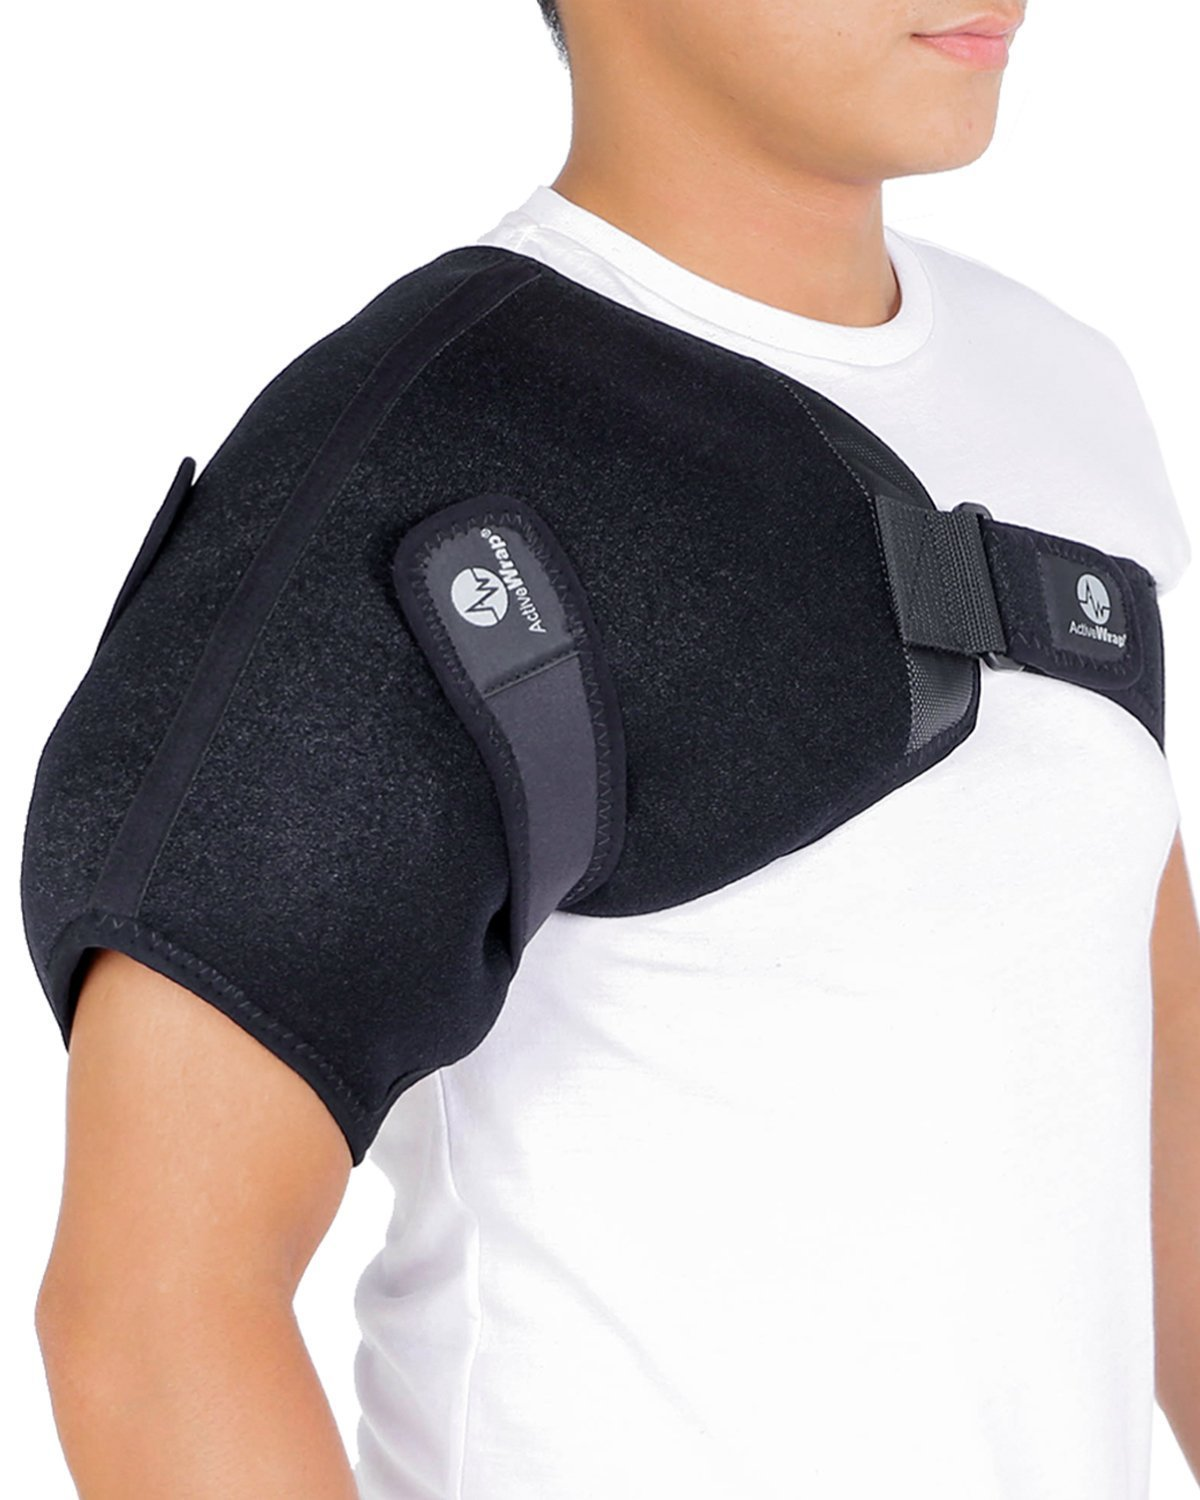 ActiveWrap Shoulder Ice and Compression Support for Rotator Cuff Injuries Recovery BAWSH11 - Large Reusable Hot Cold Packs Included